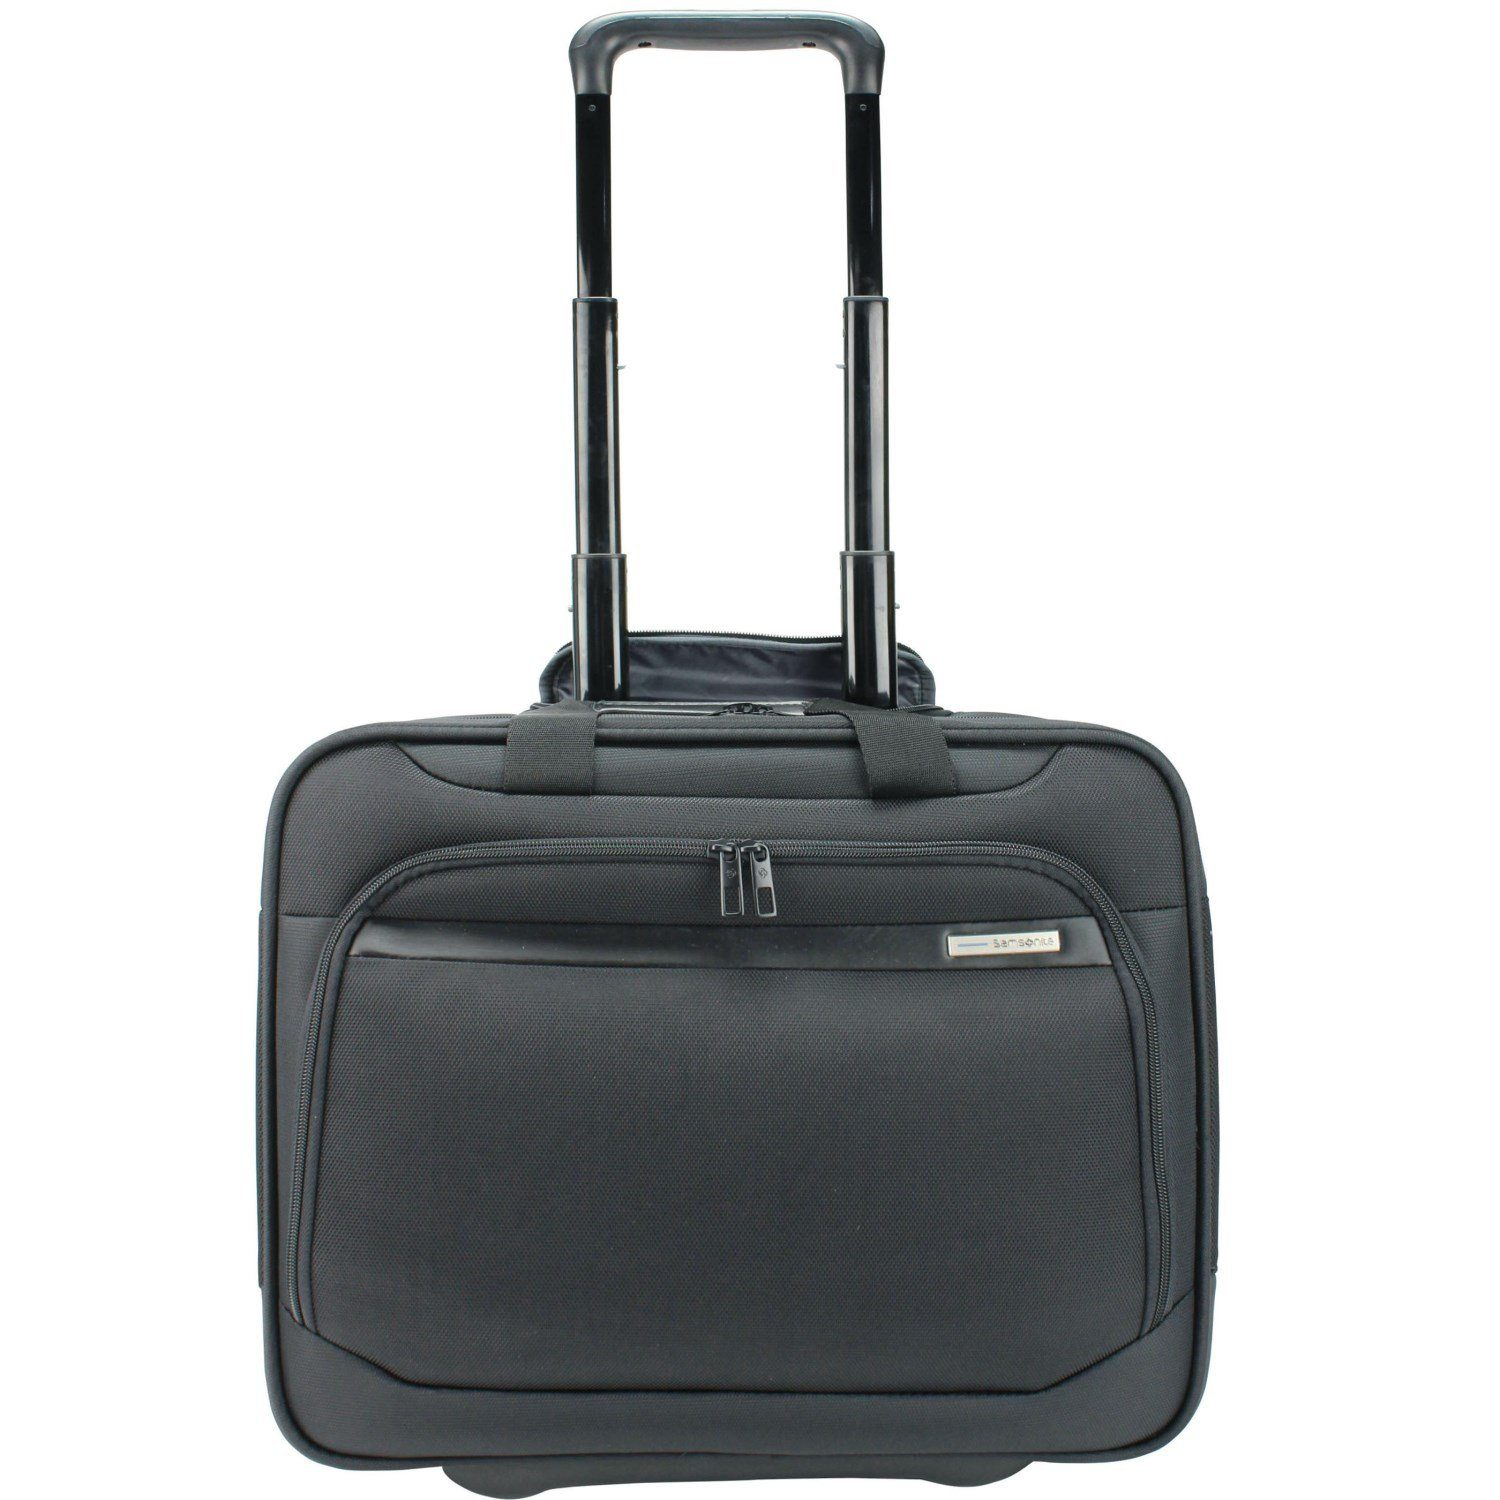 Samsonite Vectura 2-Rollen Businesstrolley 42 cm Laptopfach